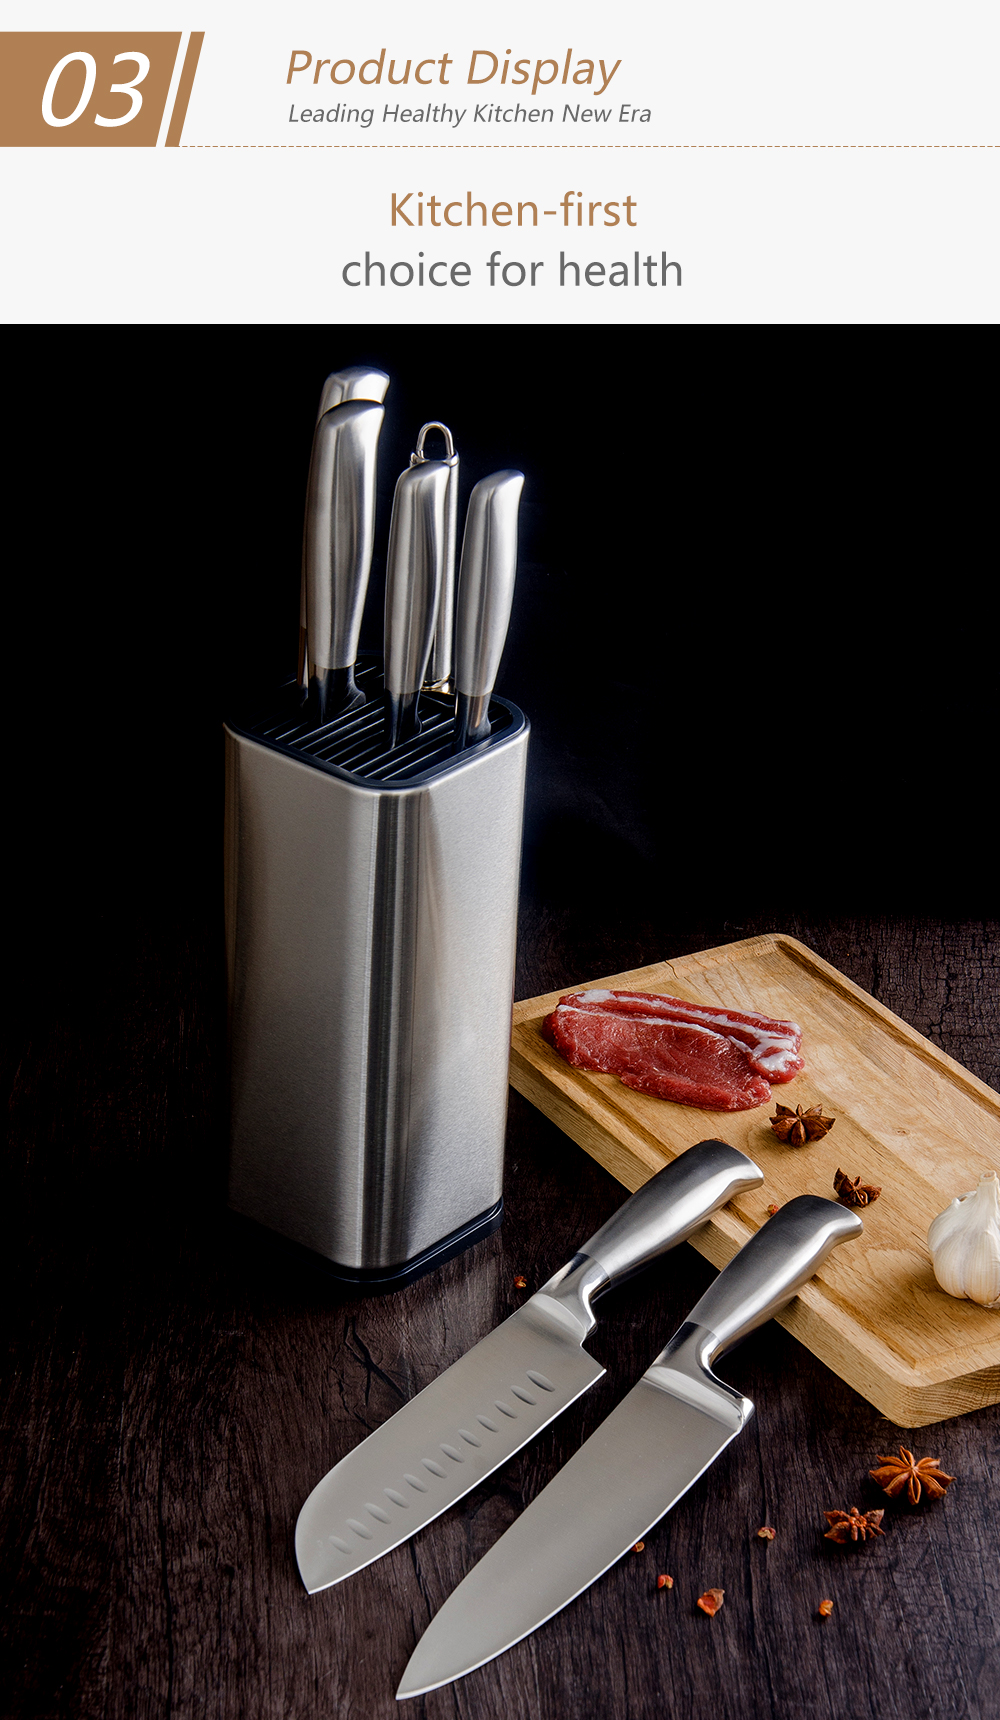 Knife Bags For Chefs Master Design Kitchen Knife Stand Stainless Steel Knife Block Knife Holder Fashion Kitchen Knife Partner